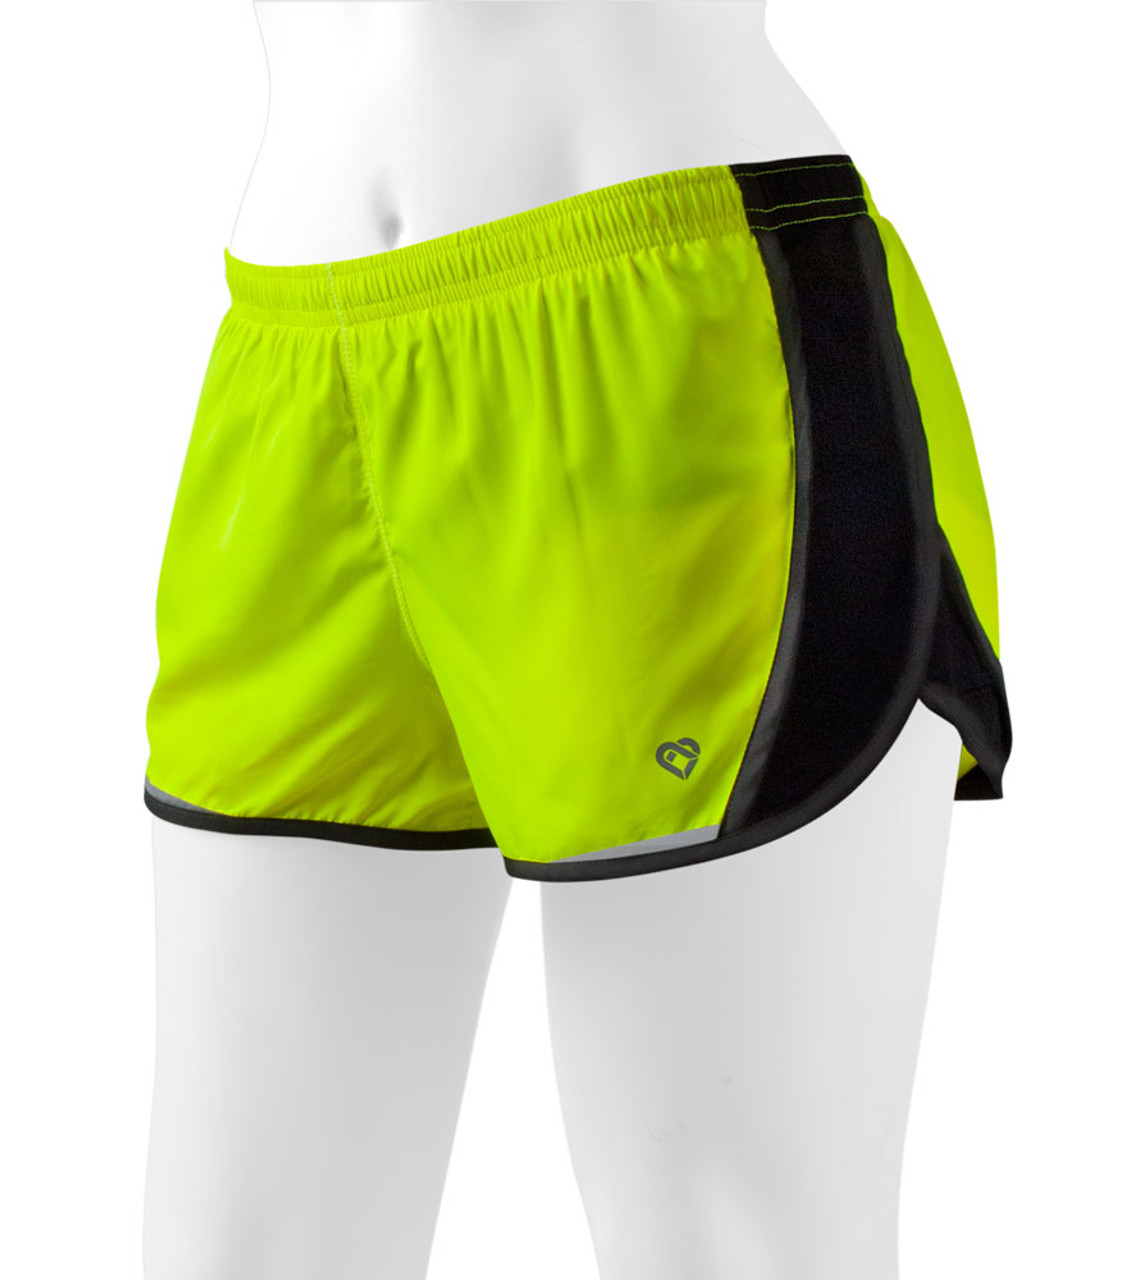 c6c0cac1b Women's Safety Yellow Hi-Vis Running Shorts - Breeze by Colosseum